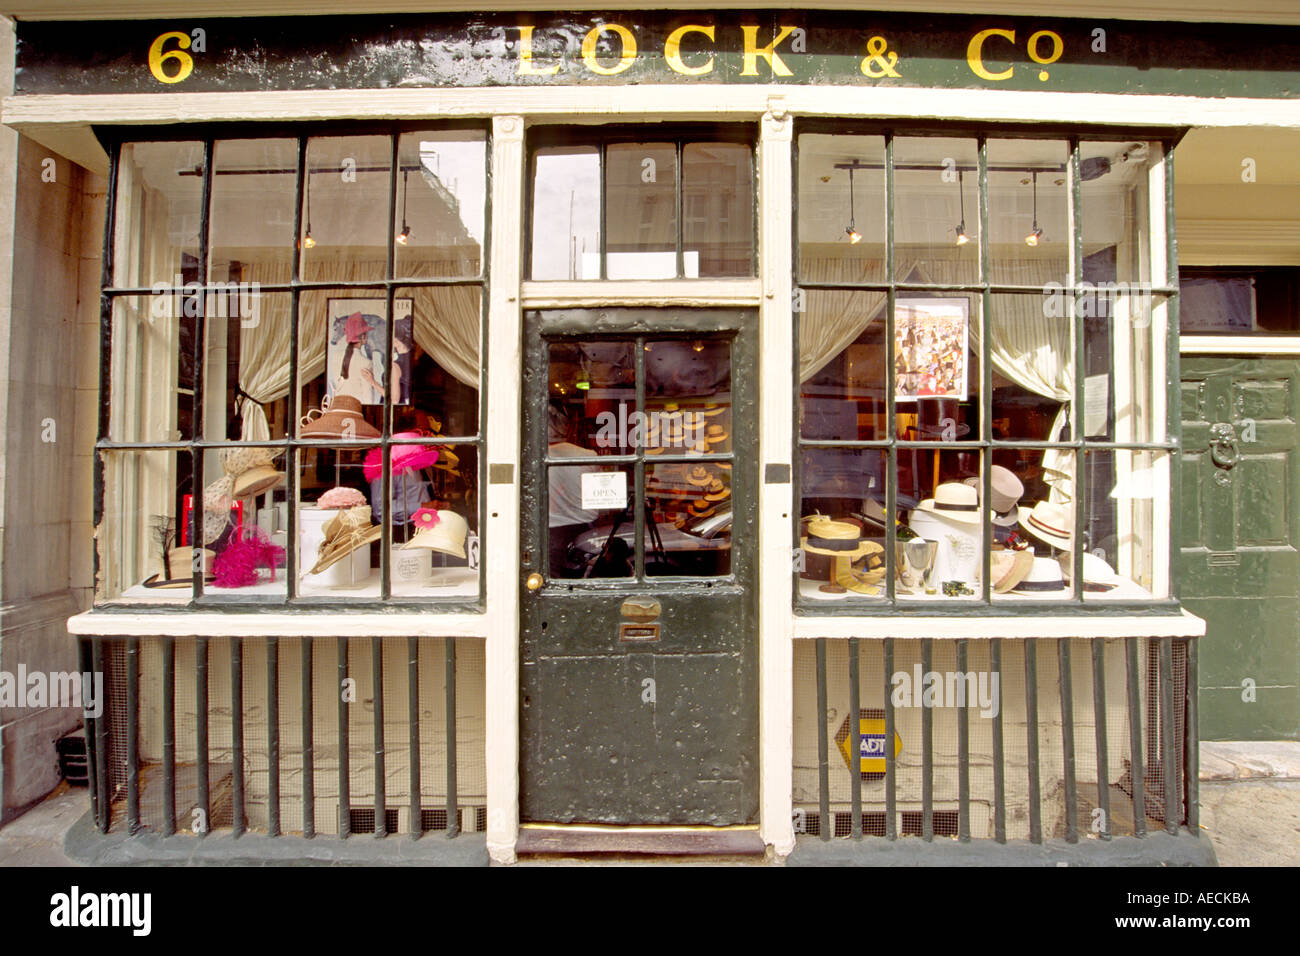 lock co a victorian era hat shop in london stock photo royalty free image 4453305 alamy. Black Bedroom Furniture Sets. Home Design Ideas